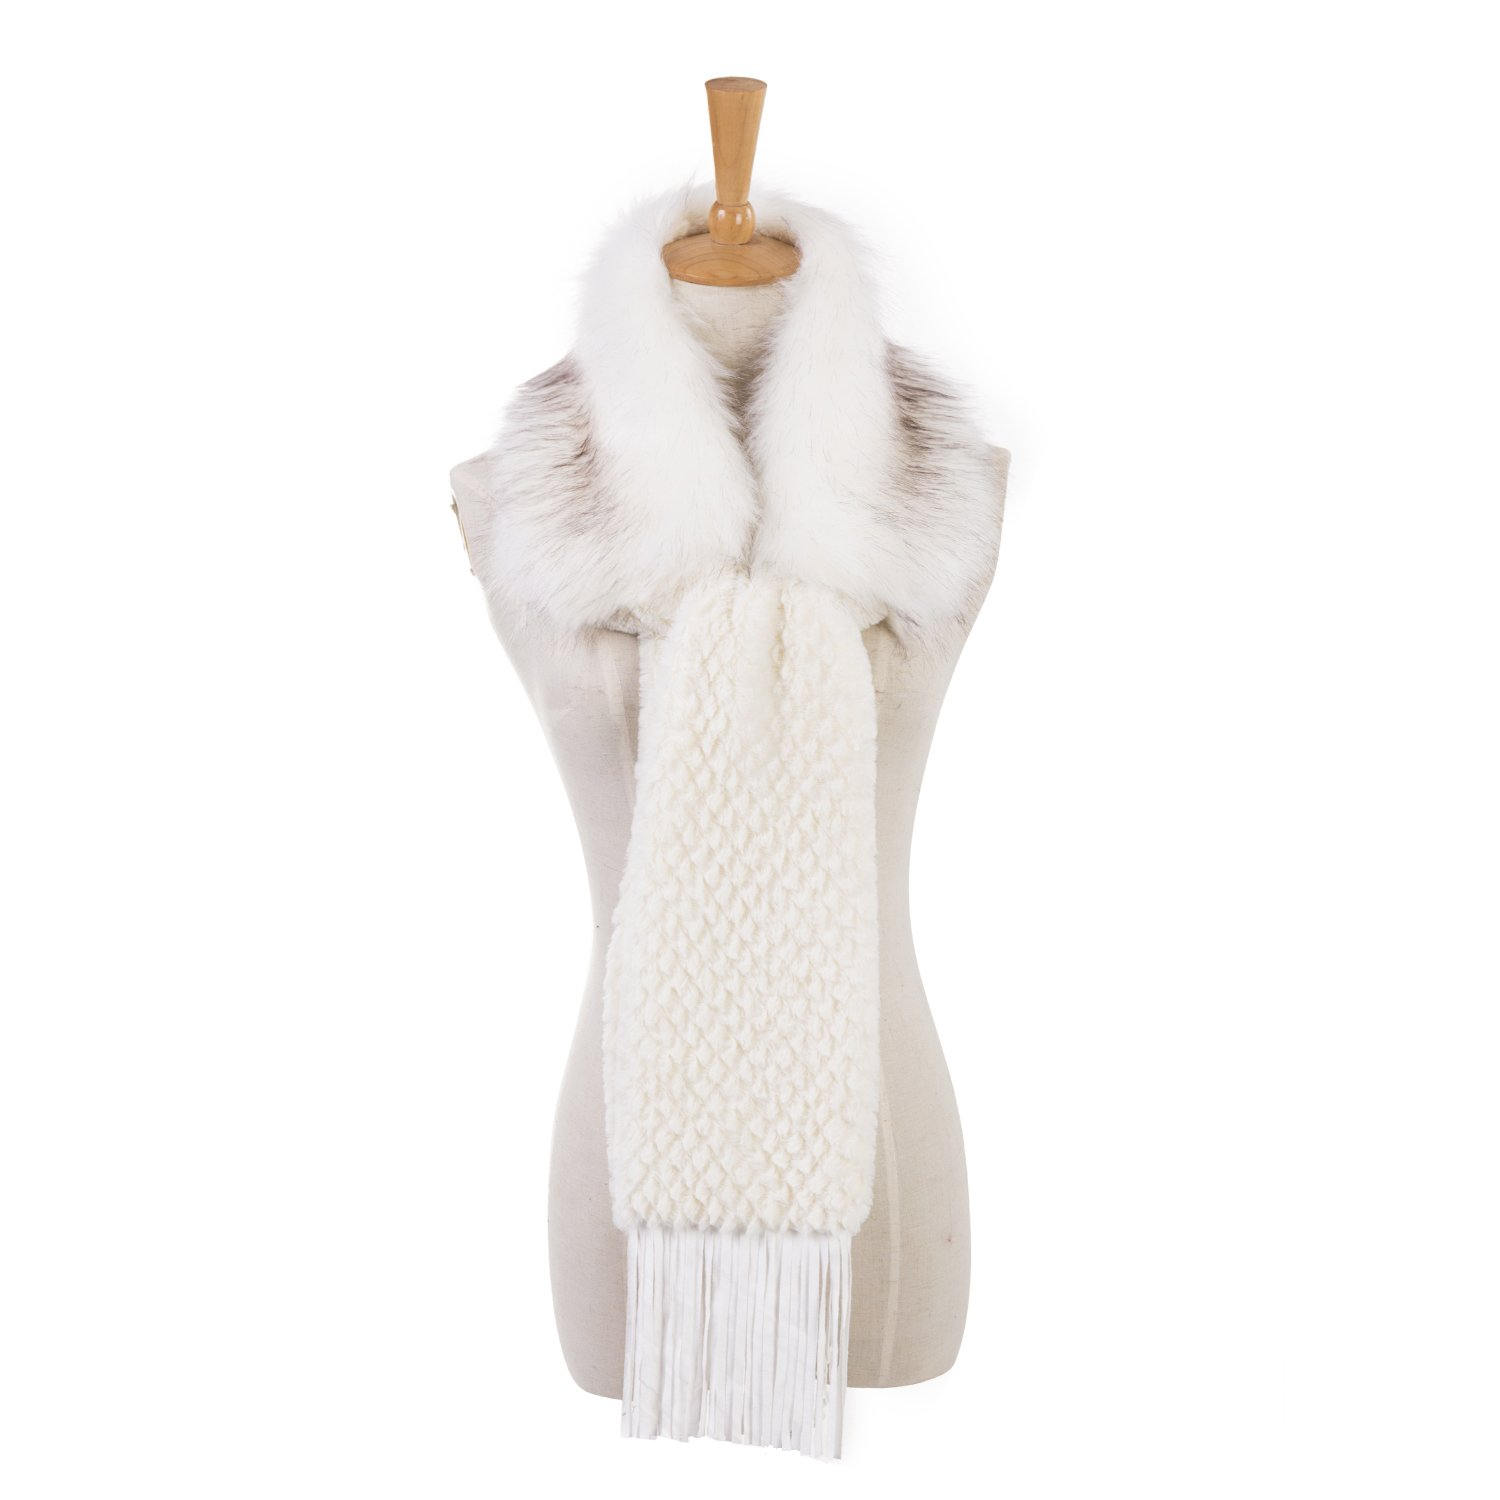 Faux Fur Collar for Winter Coat and Jacket, Fur Winter Warm Scarf for Women by REDESS[Various of Styles and Colors] (Scarf Cream White)